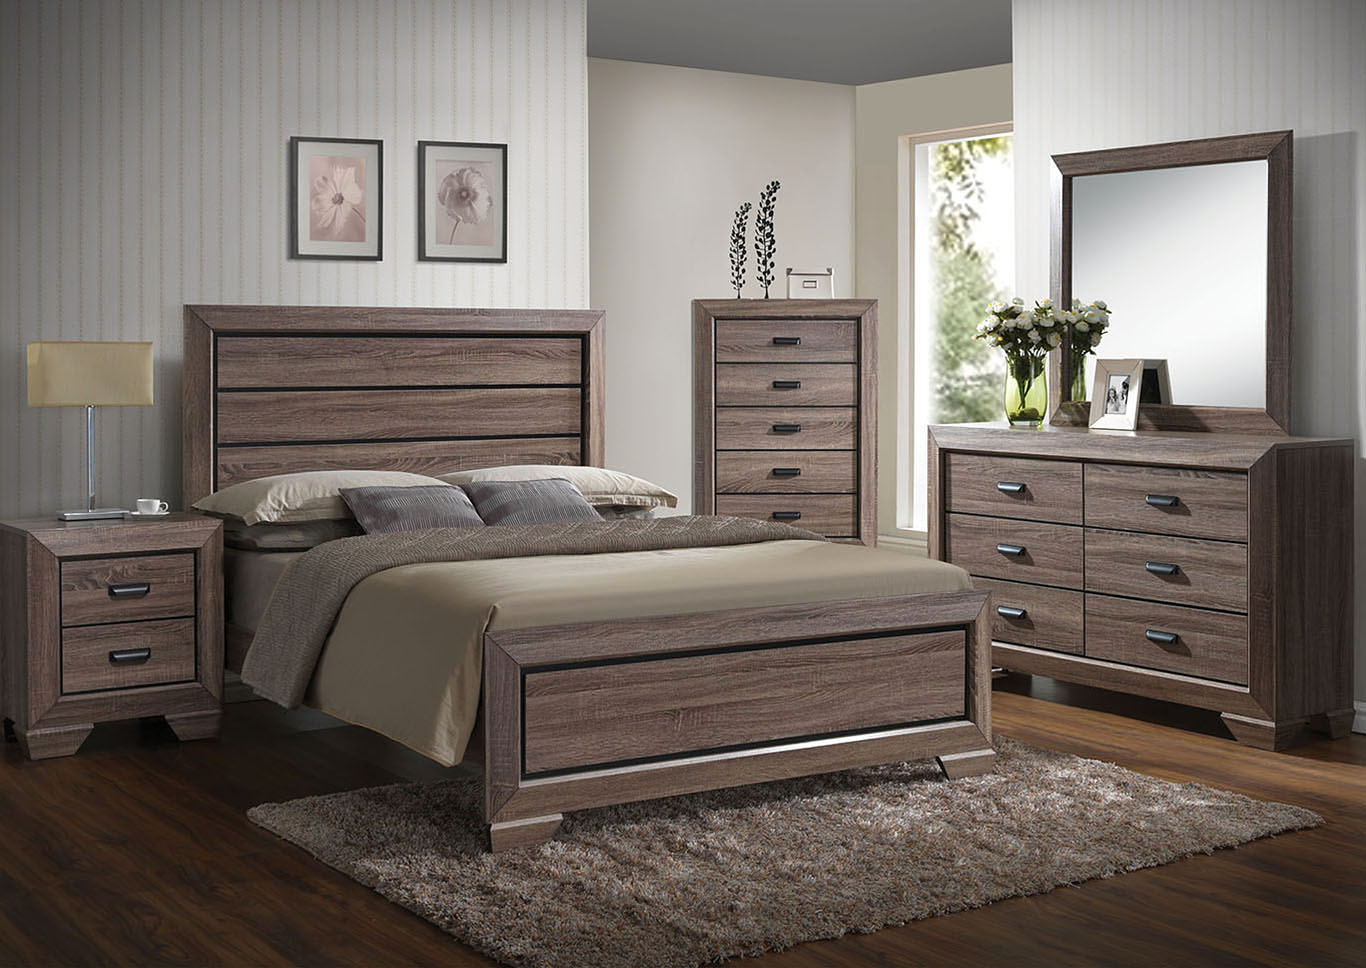 Lyndon Weathered Gray Eastern King Panel Bed w/Dresser and Mirror,Acme